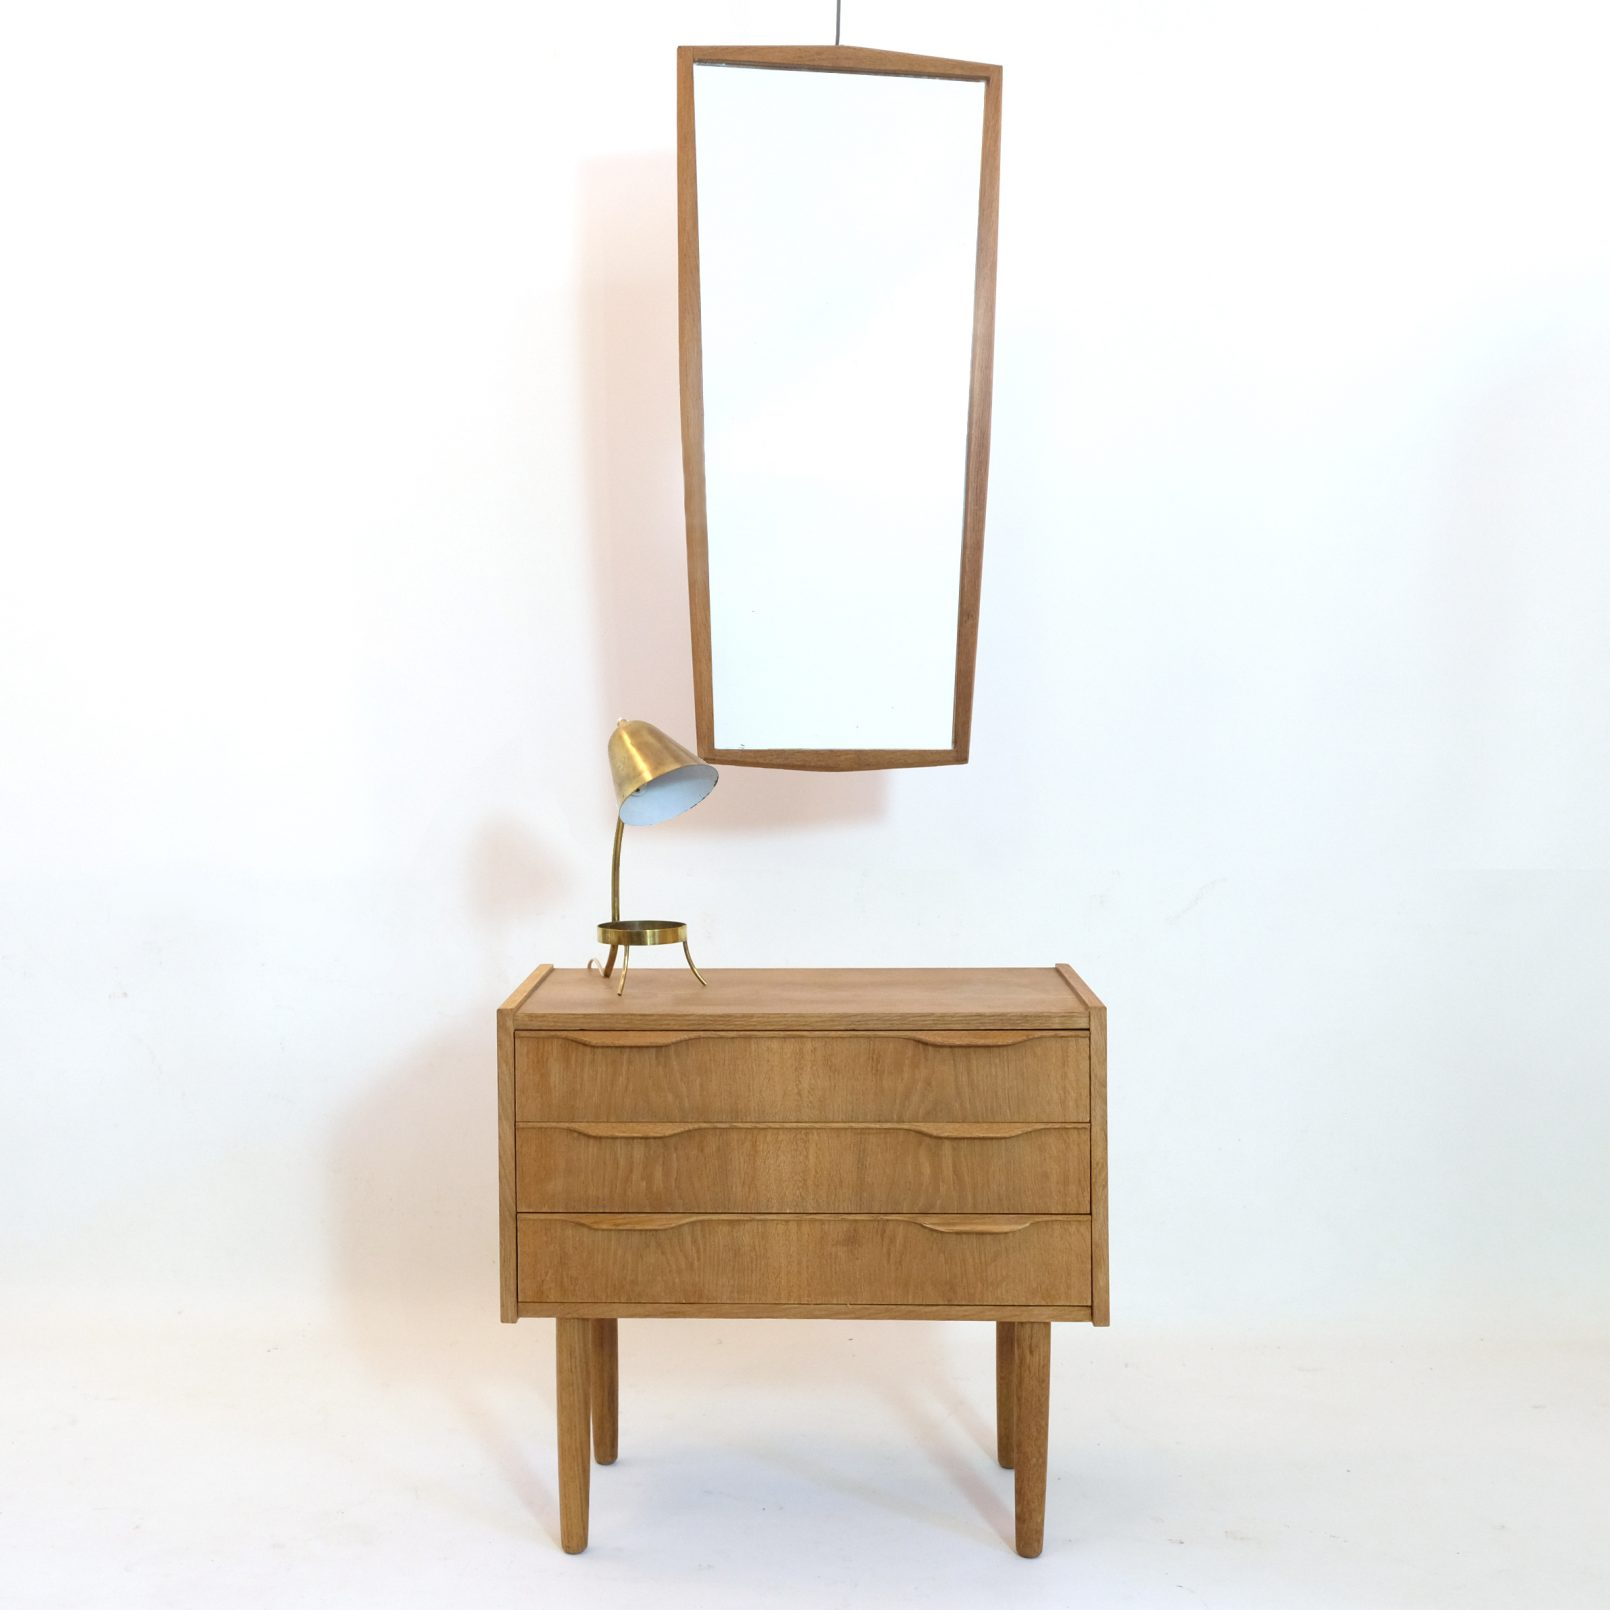 Little chest of drawers and mirror, 1960s.